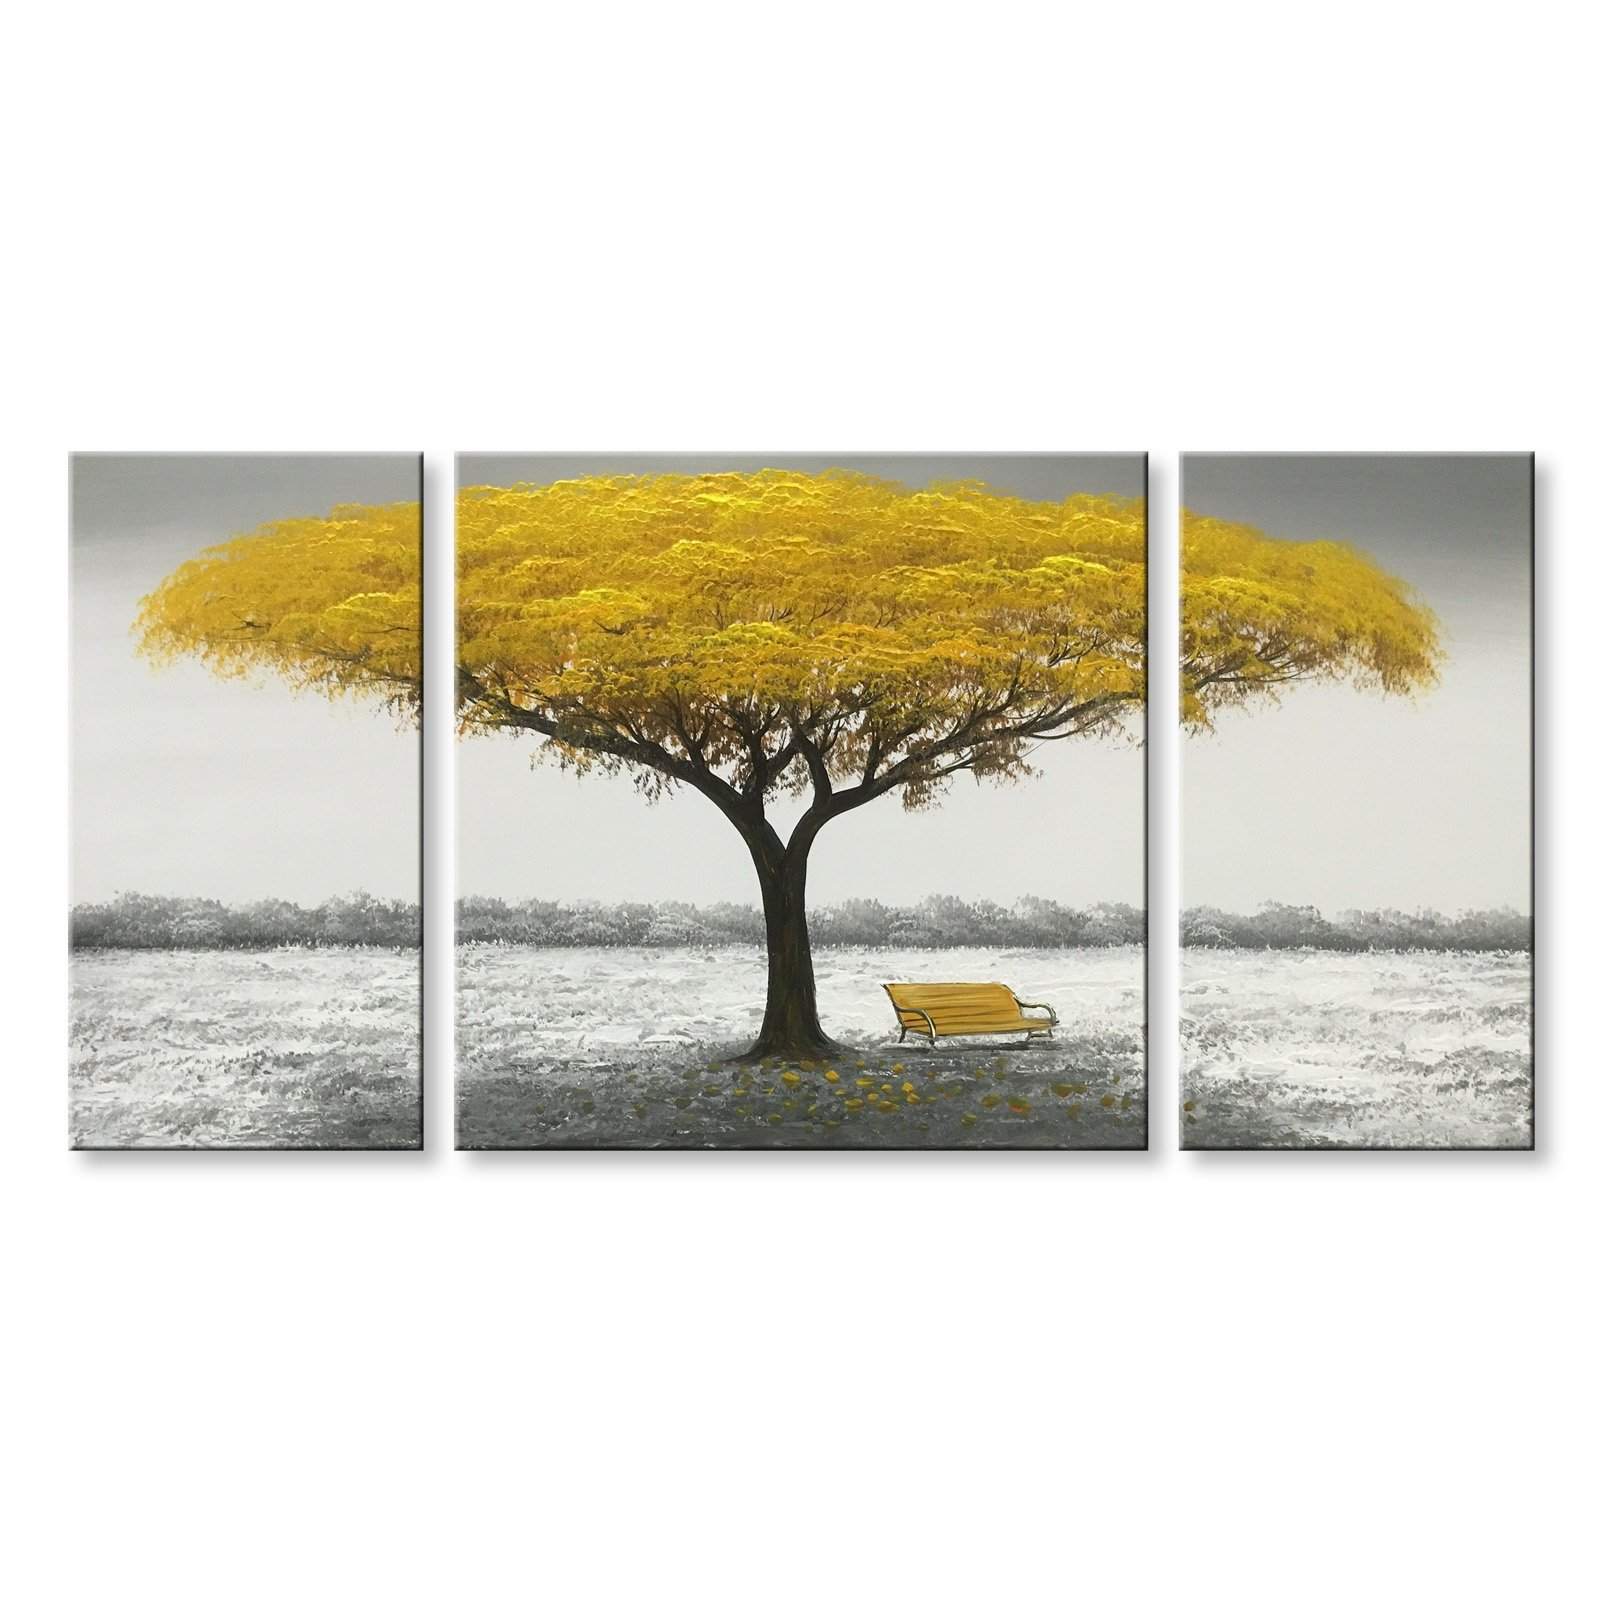 Winpeak Hand Painted Yellow Tree Large Modern Oil Painting Landscape Canvas Wall Art Abstract Picture Huge Contemporary Artwork Framed Ready to Hang (64''W x 32''H (16''x32'' x2pcs, 32''x32'' x1pc)) by Winpeak Art